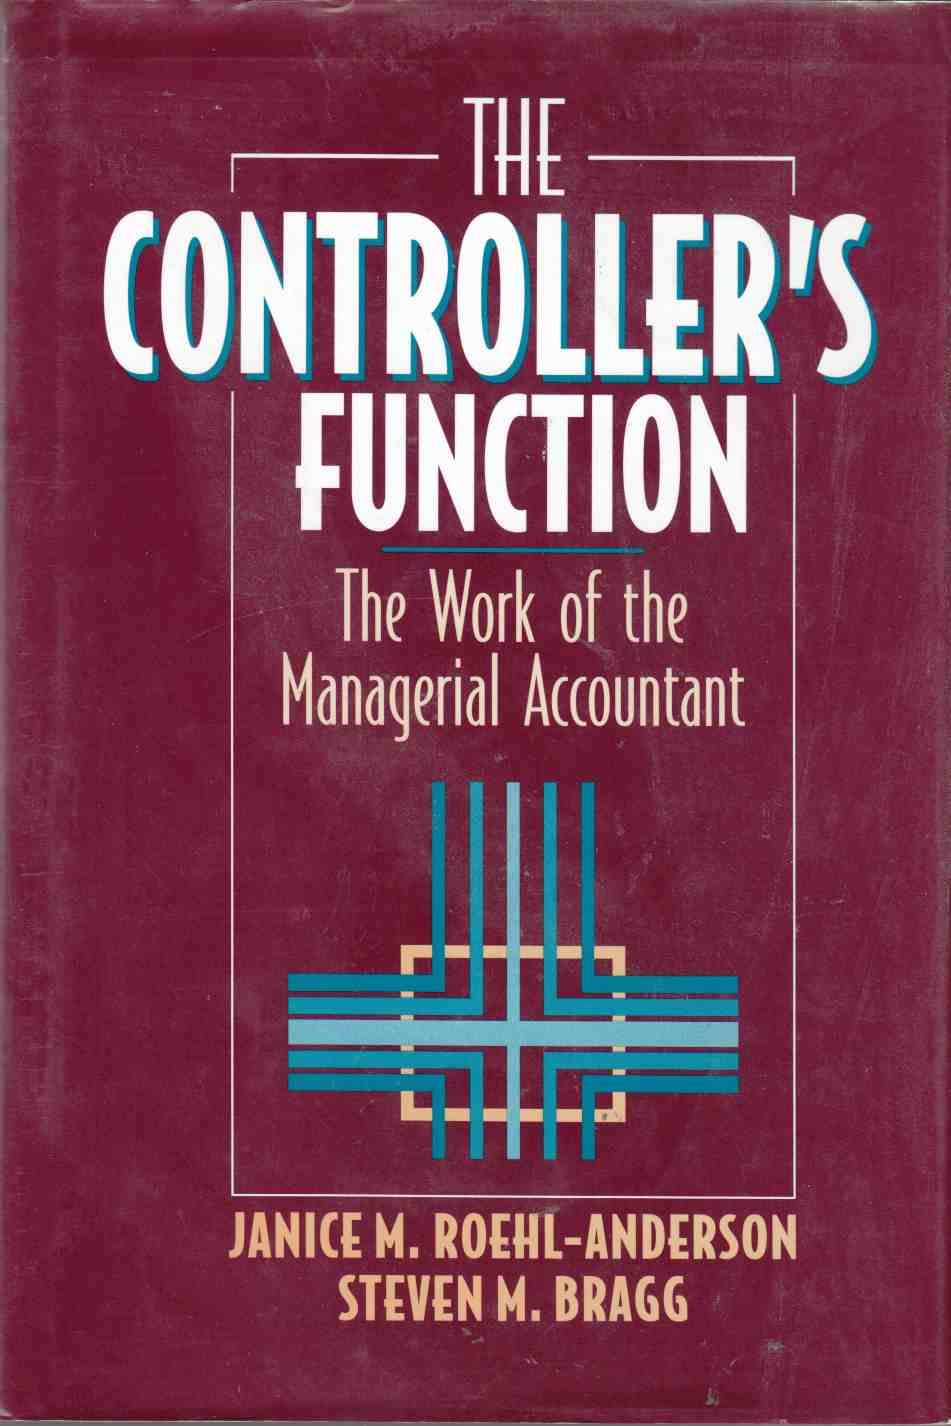 Image for The Controller's Function The Work of the Managerial Accountant